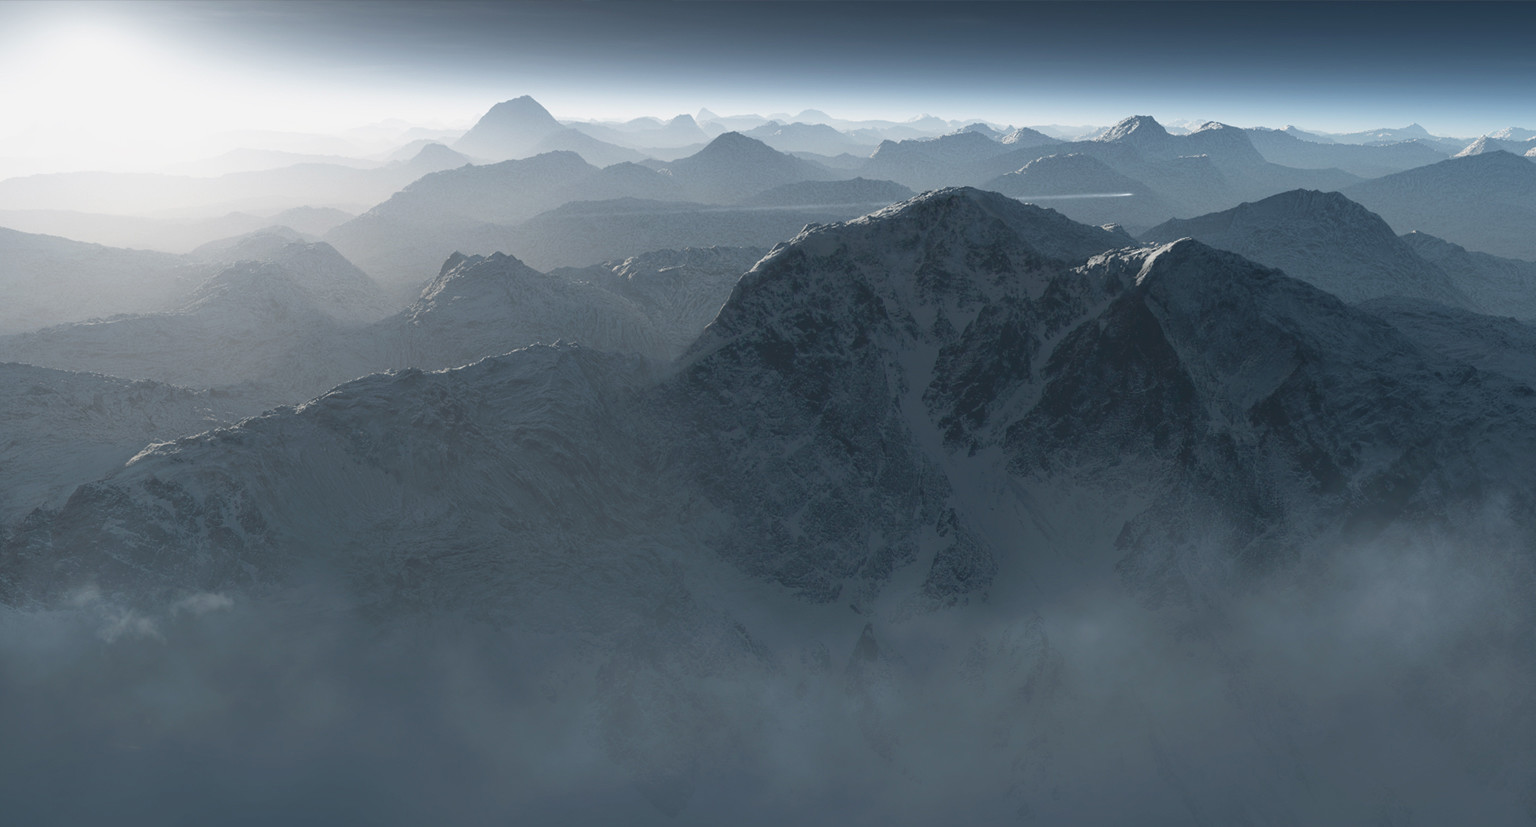 Glenn melenhorst mountains